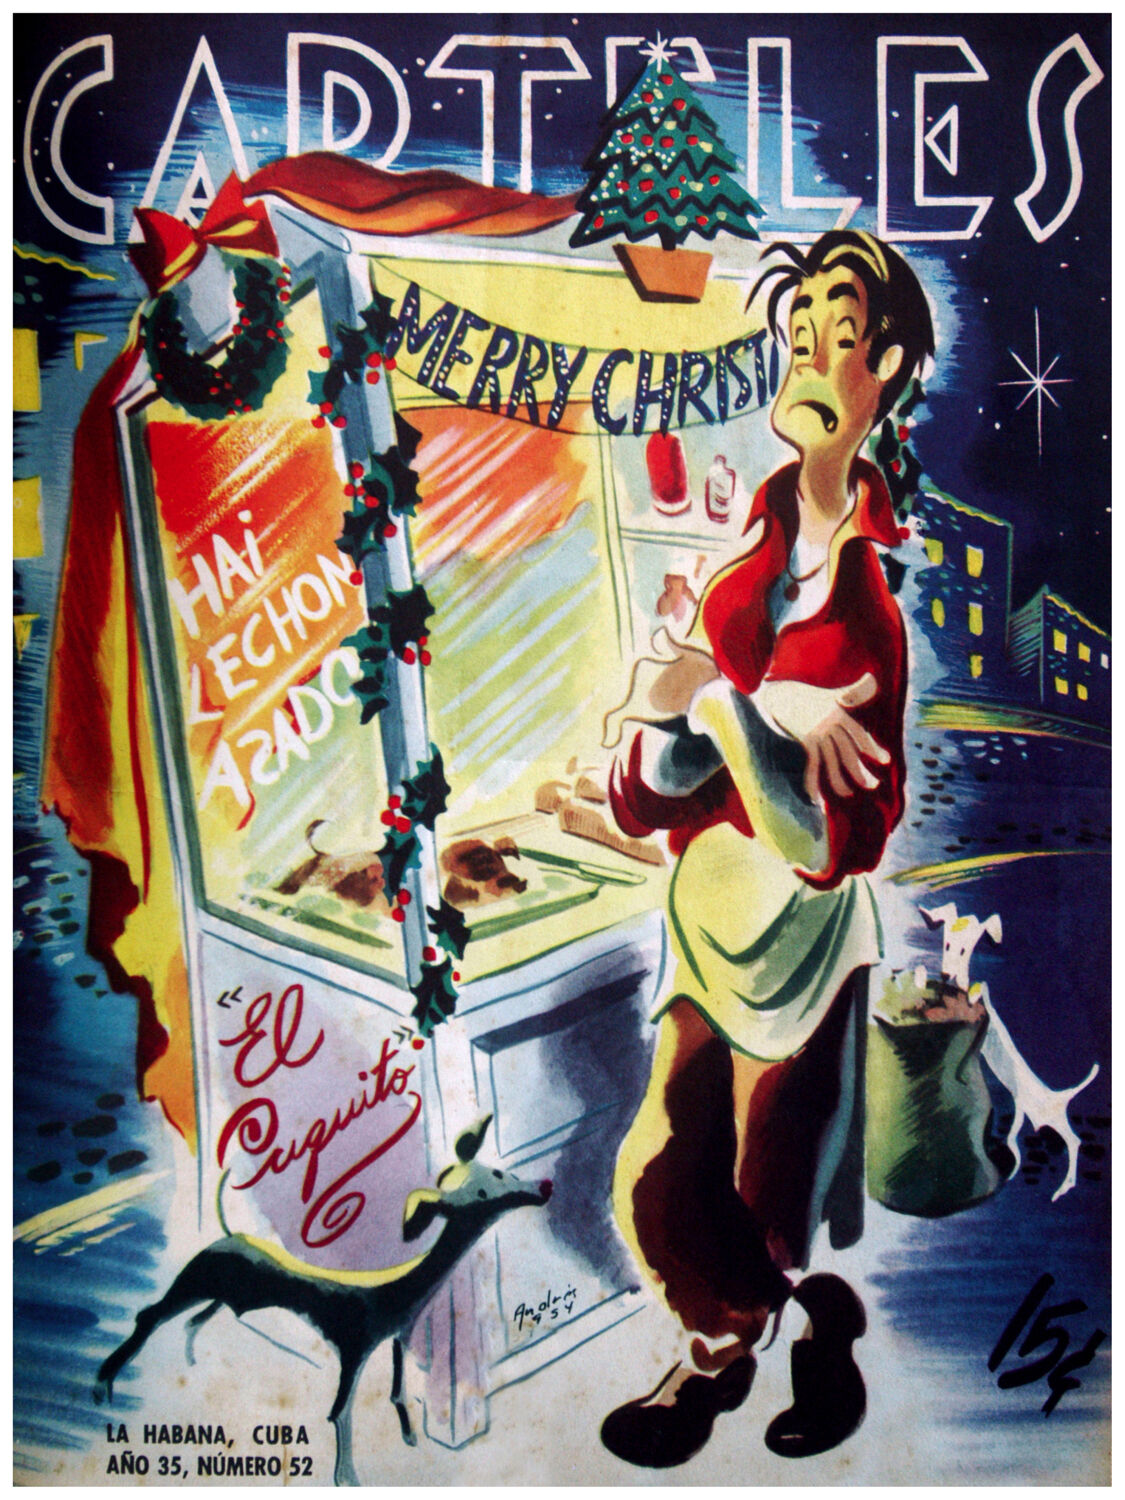 196.Decoration wall design Design poster Cuquito Can't Celebrate Christmas poor